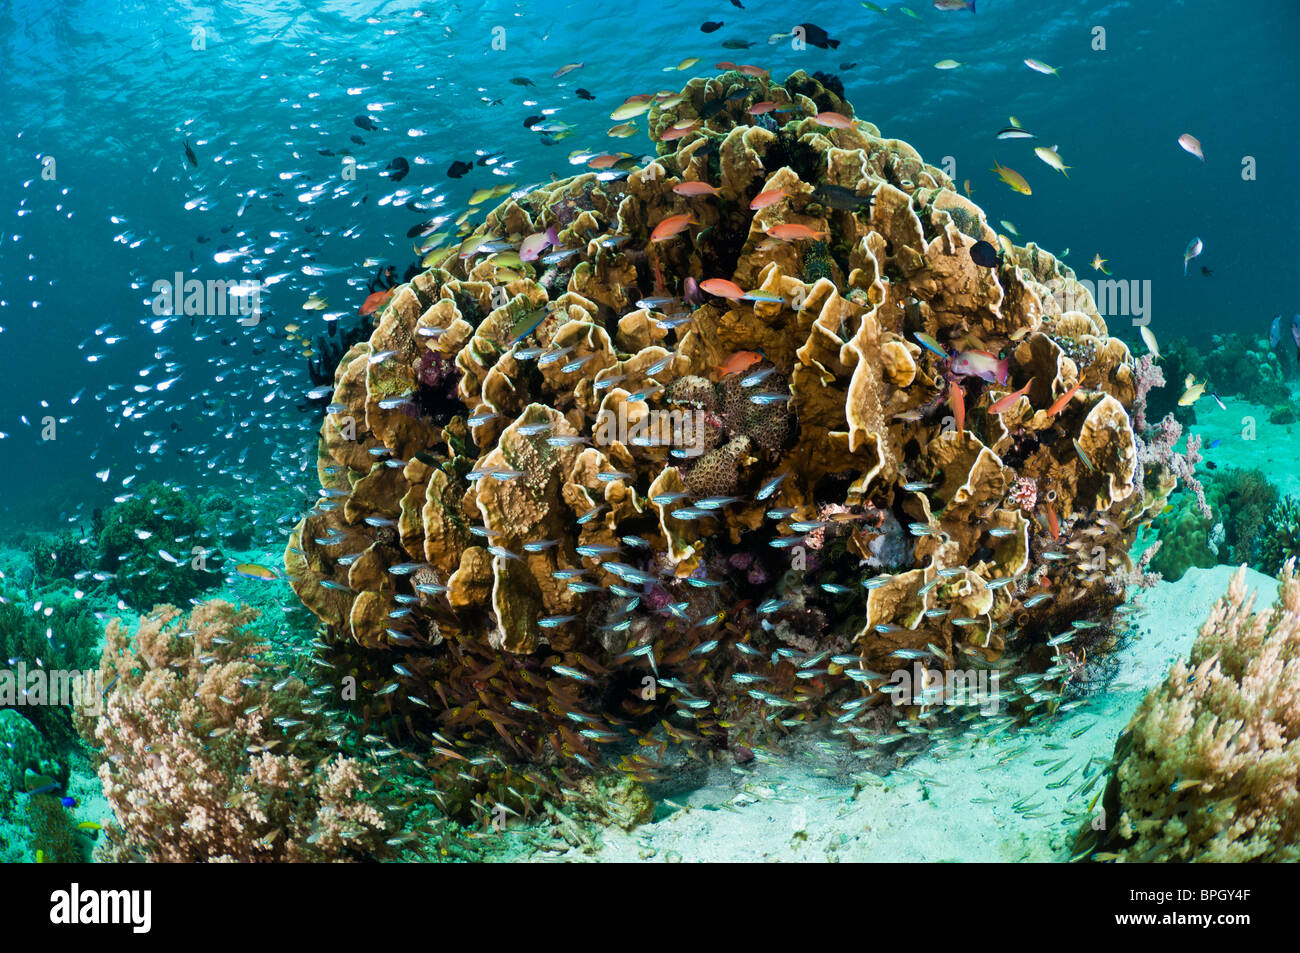 Fire coral colony surrounded by small fish, Menjangan Island, Bali, Indonesia. - Stock Image